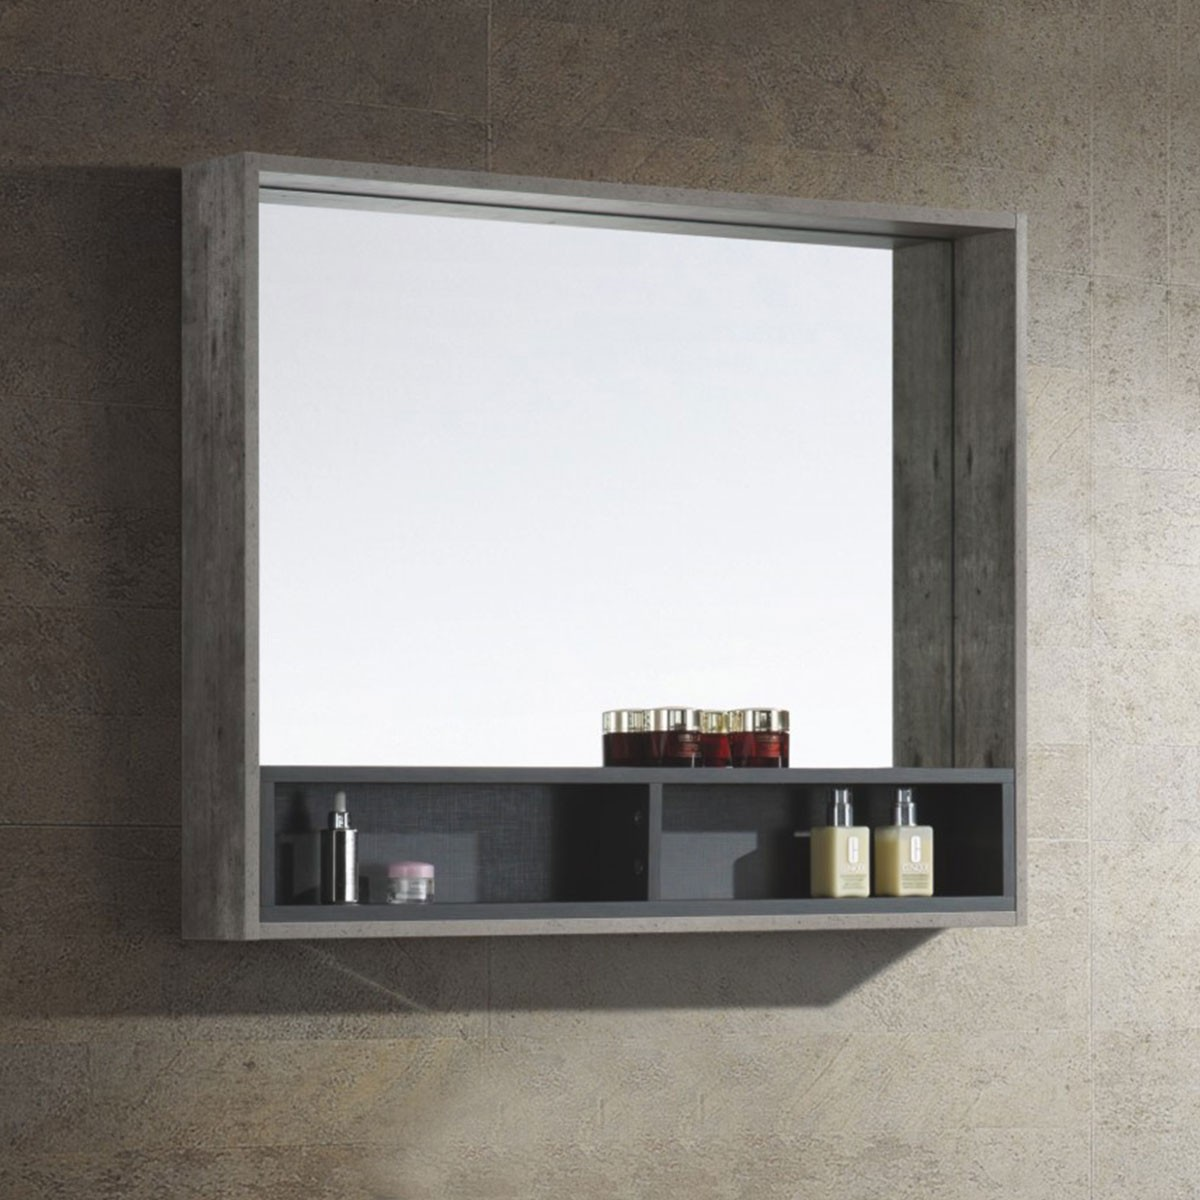 37 x 30 In Mirror Cabinet (HP1001-M)